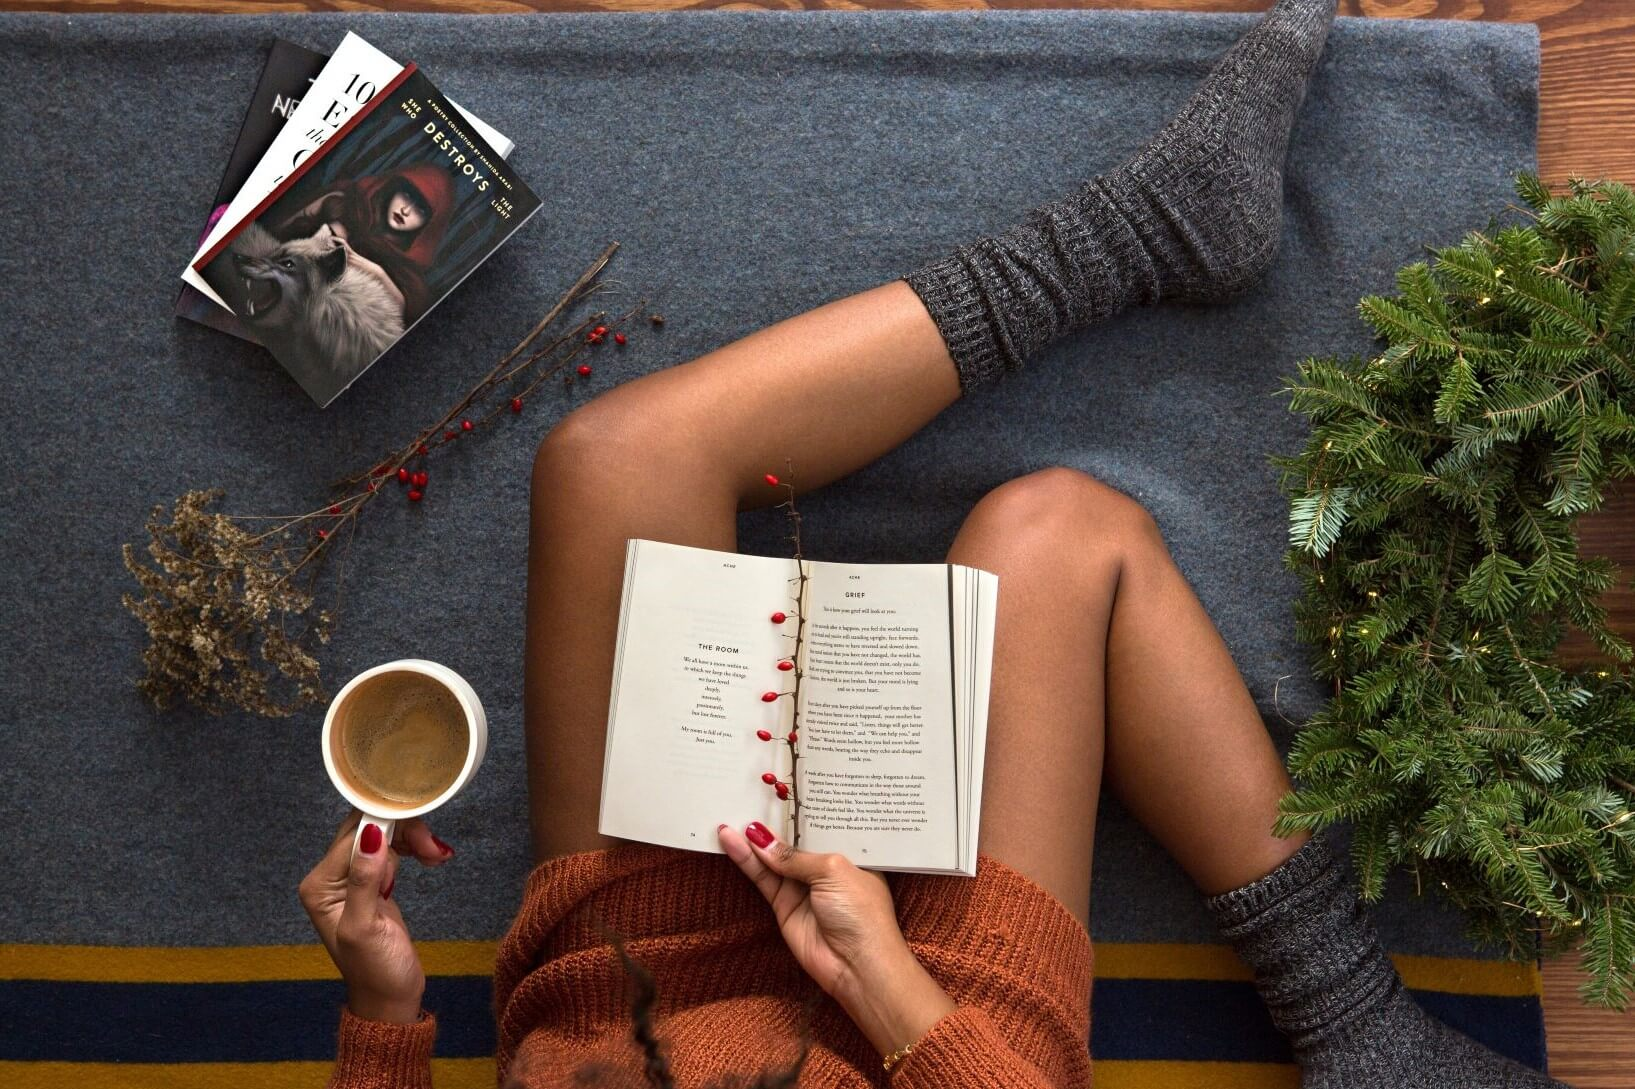 How to practice self care during the holidays